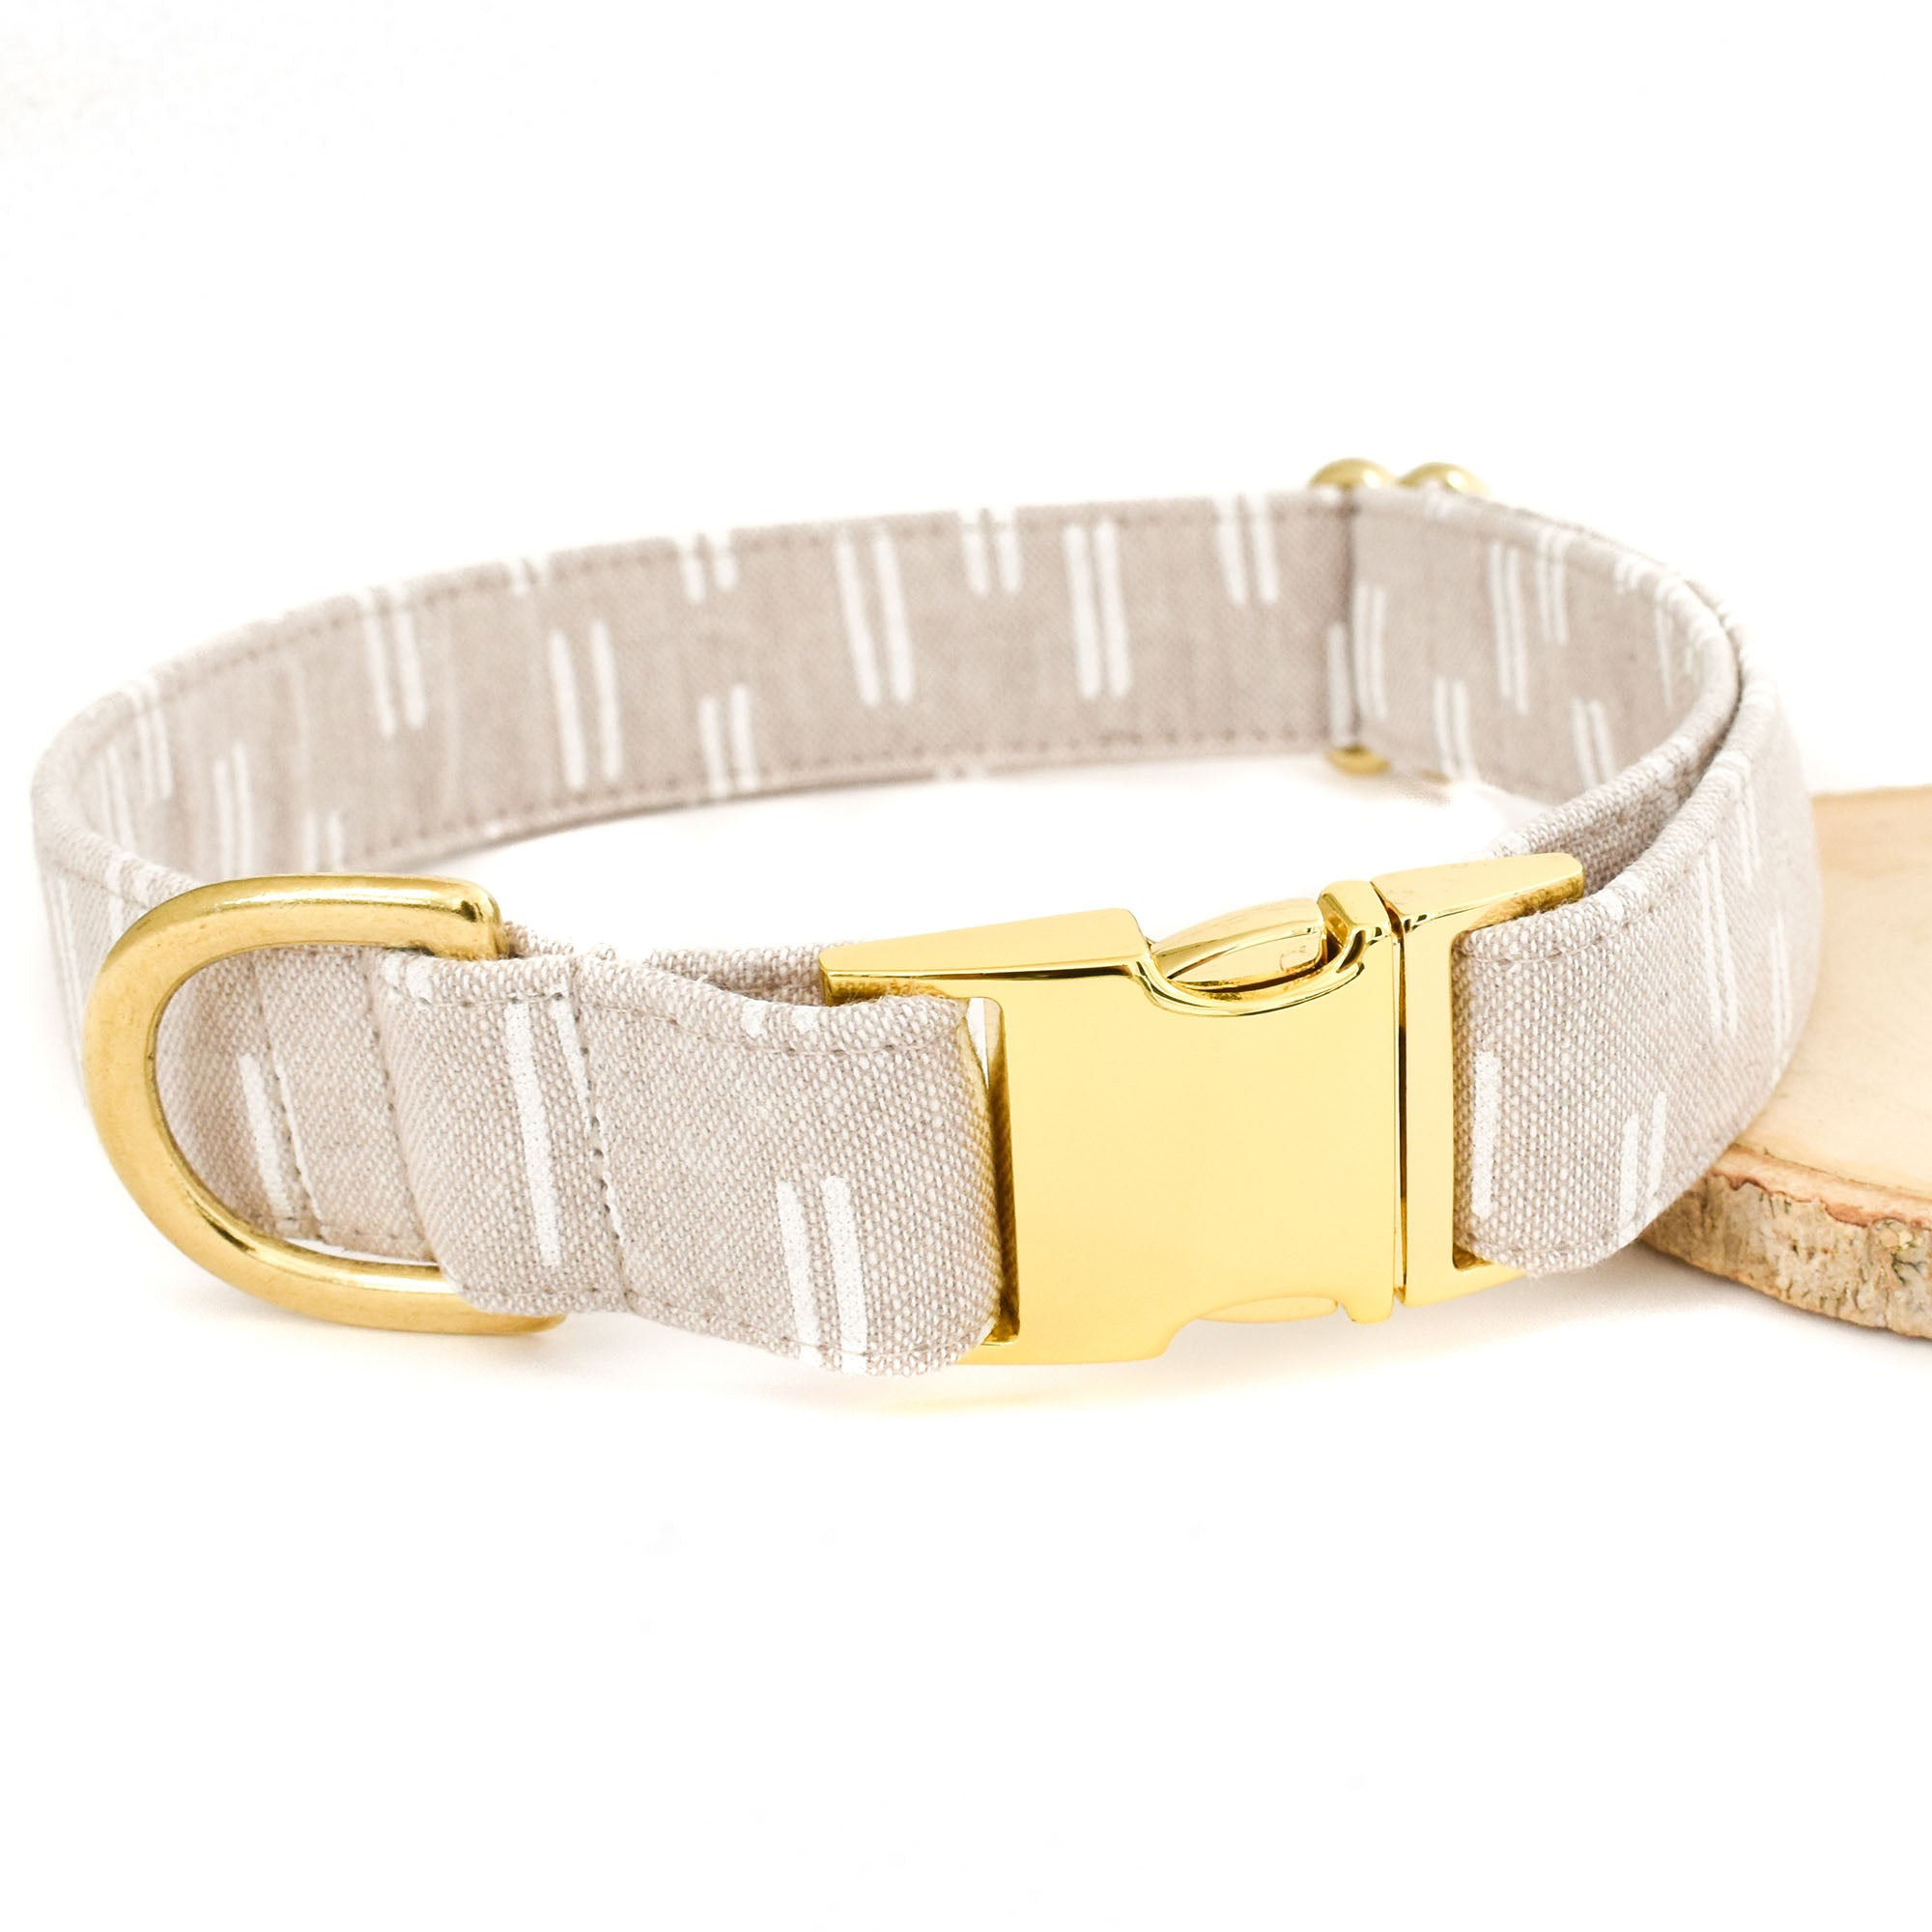 THE DAKOTA DOG COLLAR